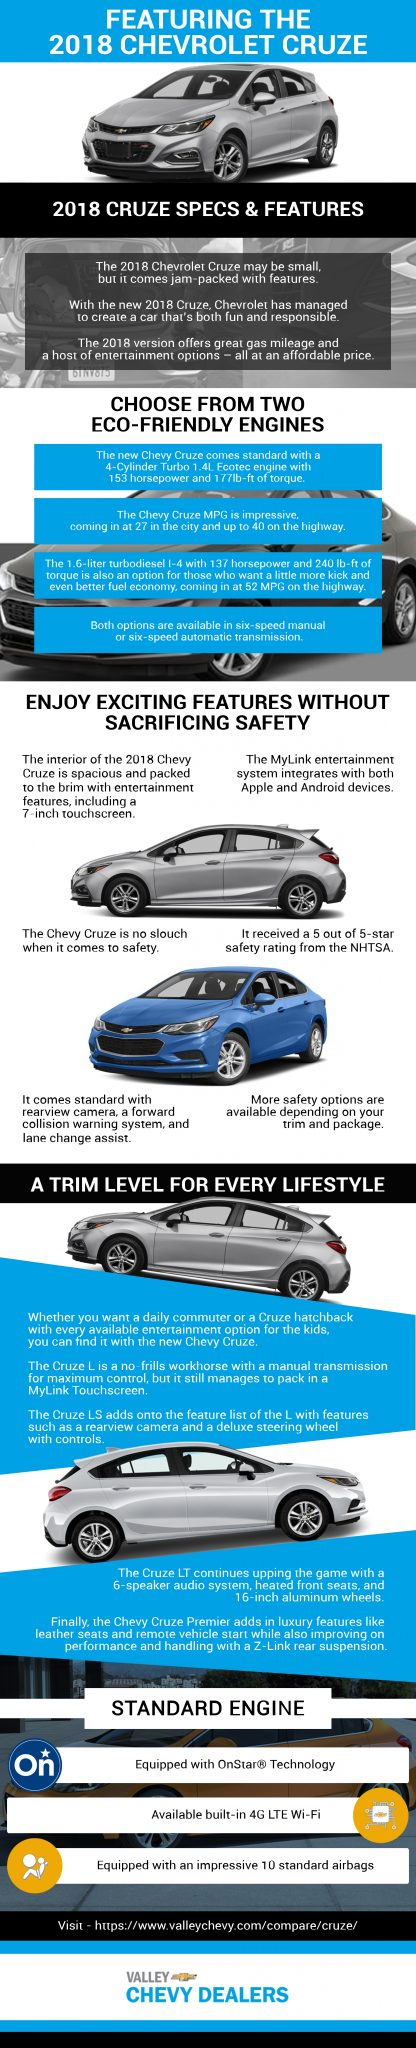 Valley Chevy - 2018 Chevrolet Cruze Features & Specs Infographic